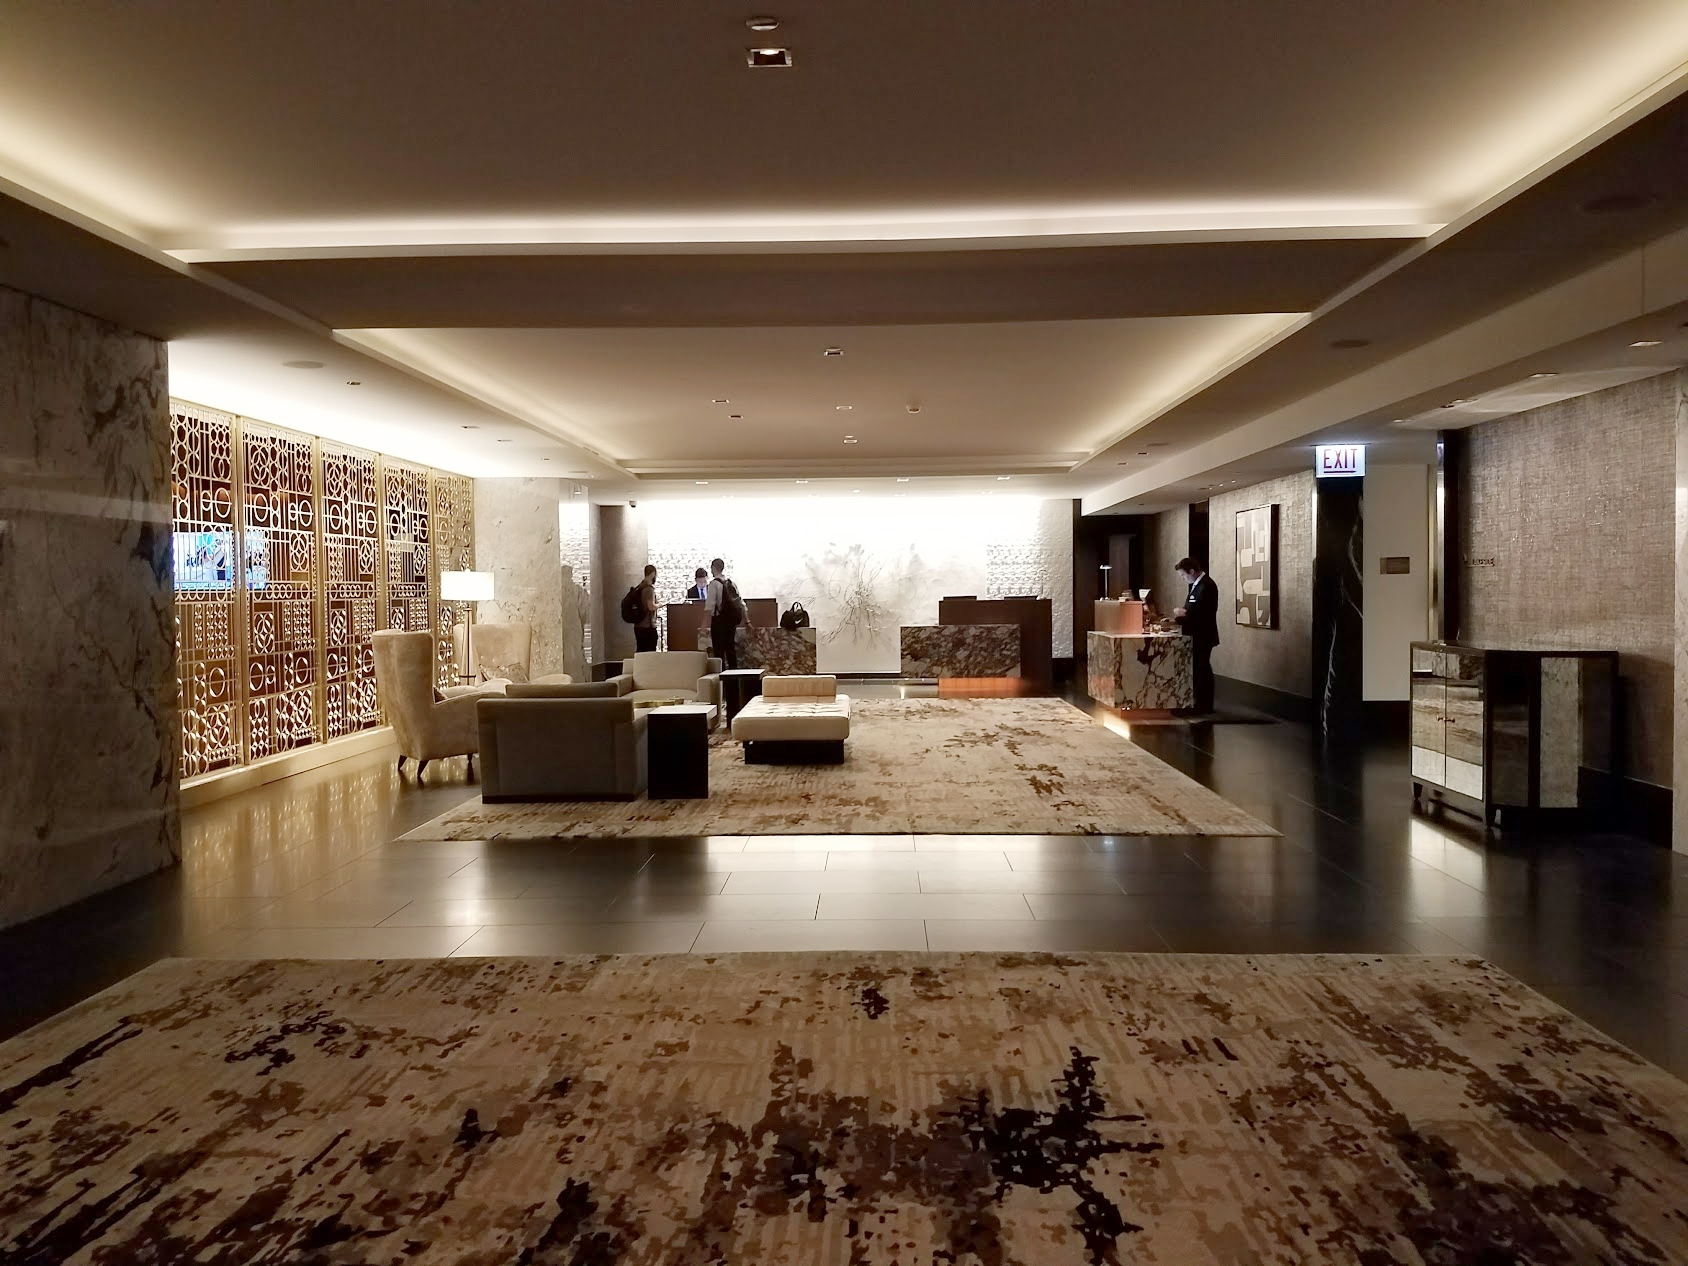 The new check-in area at The Ritz Carlton Chicago.